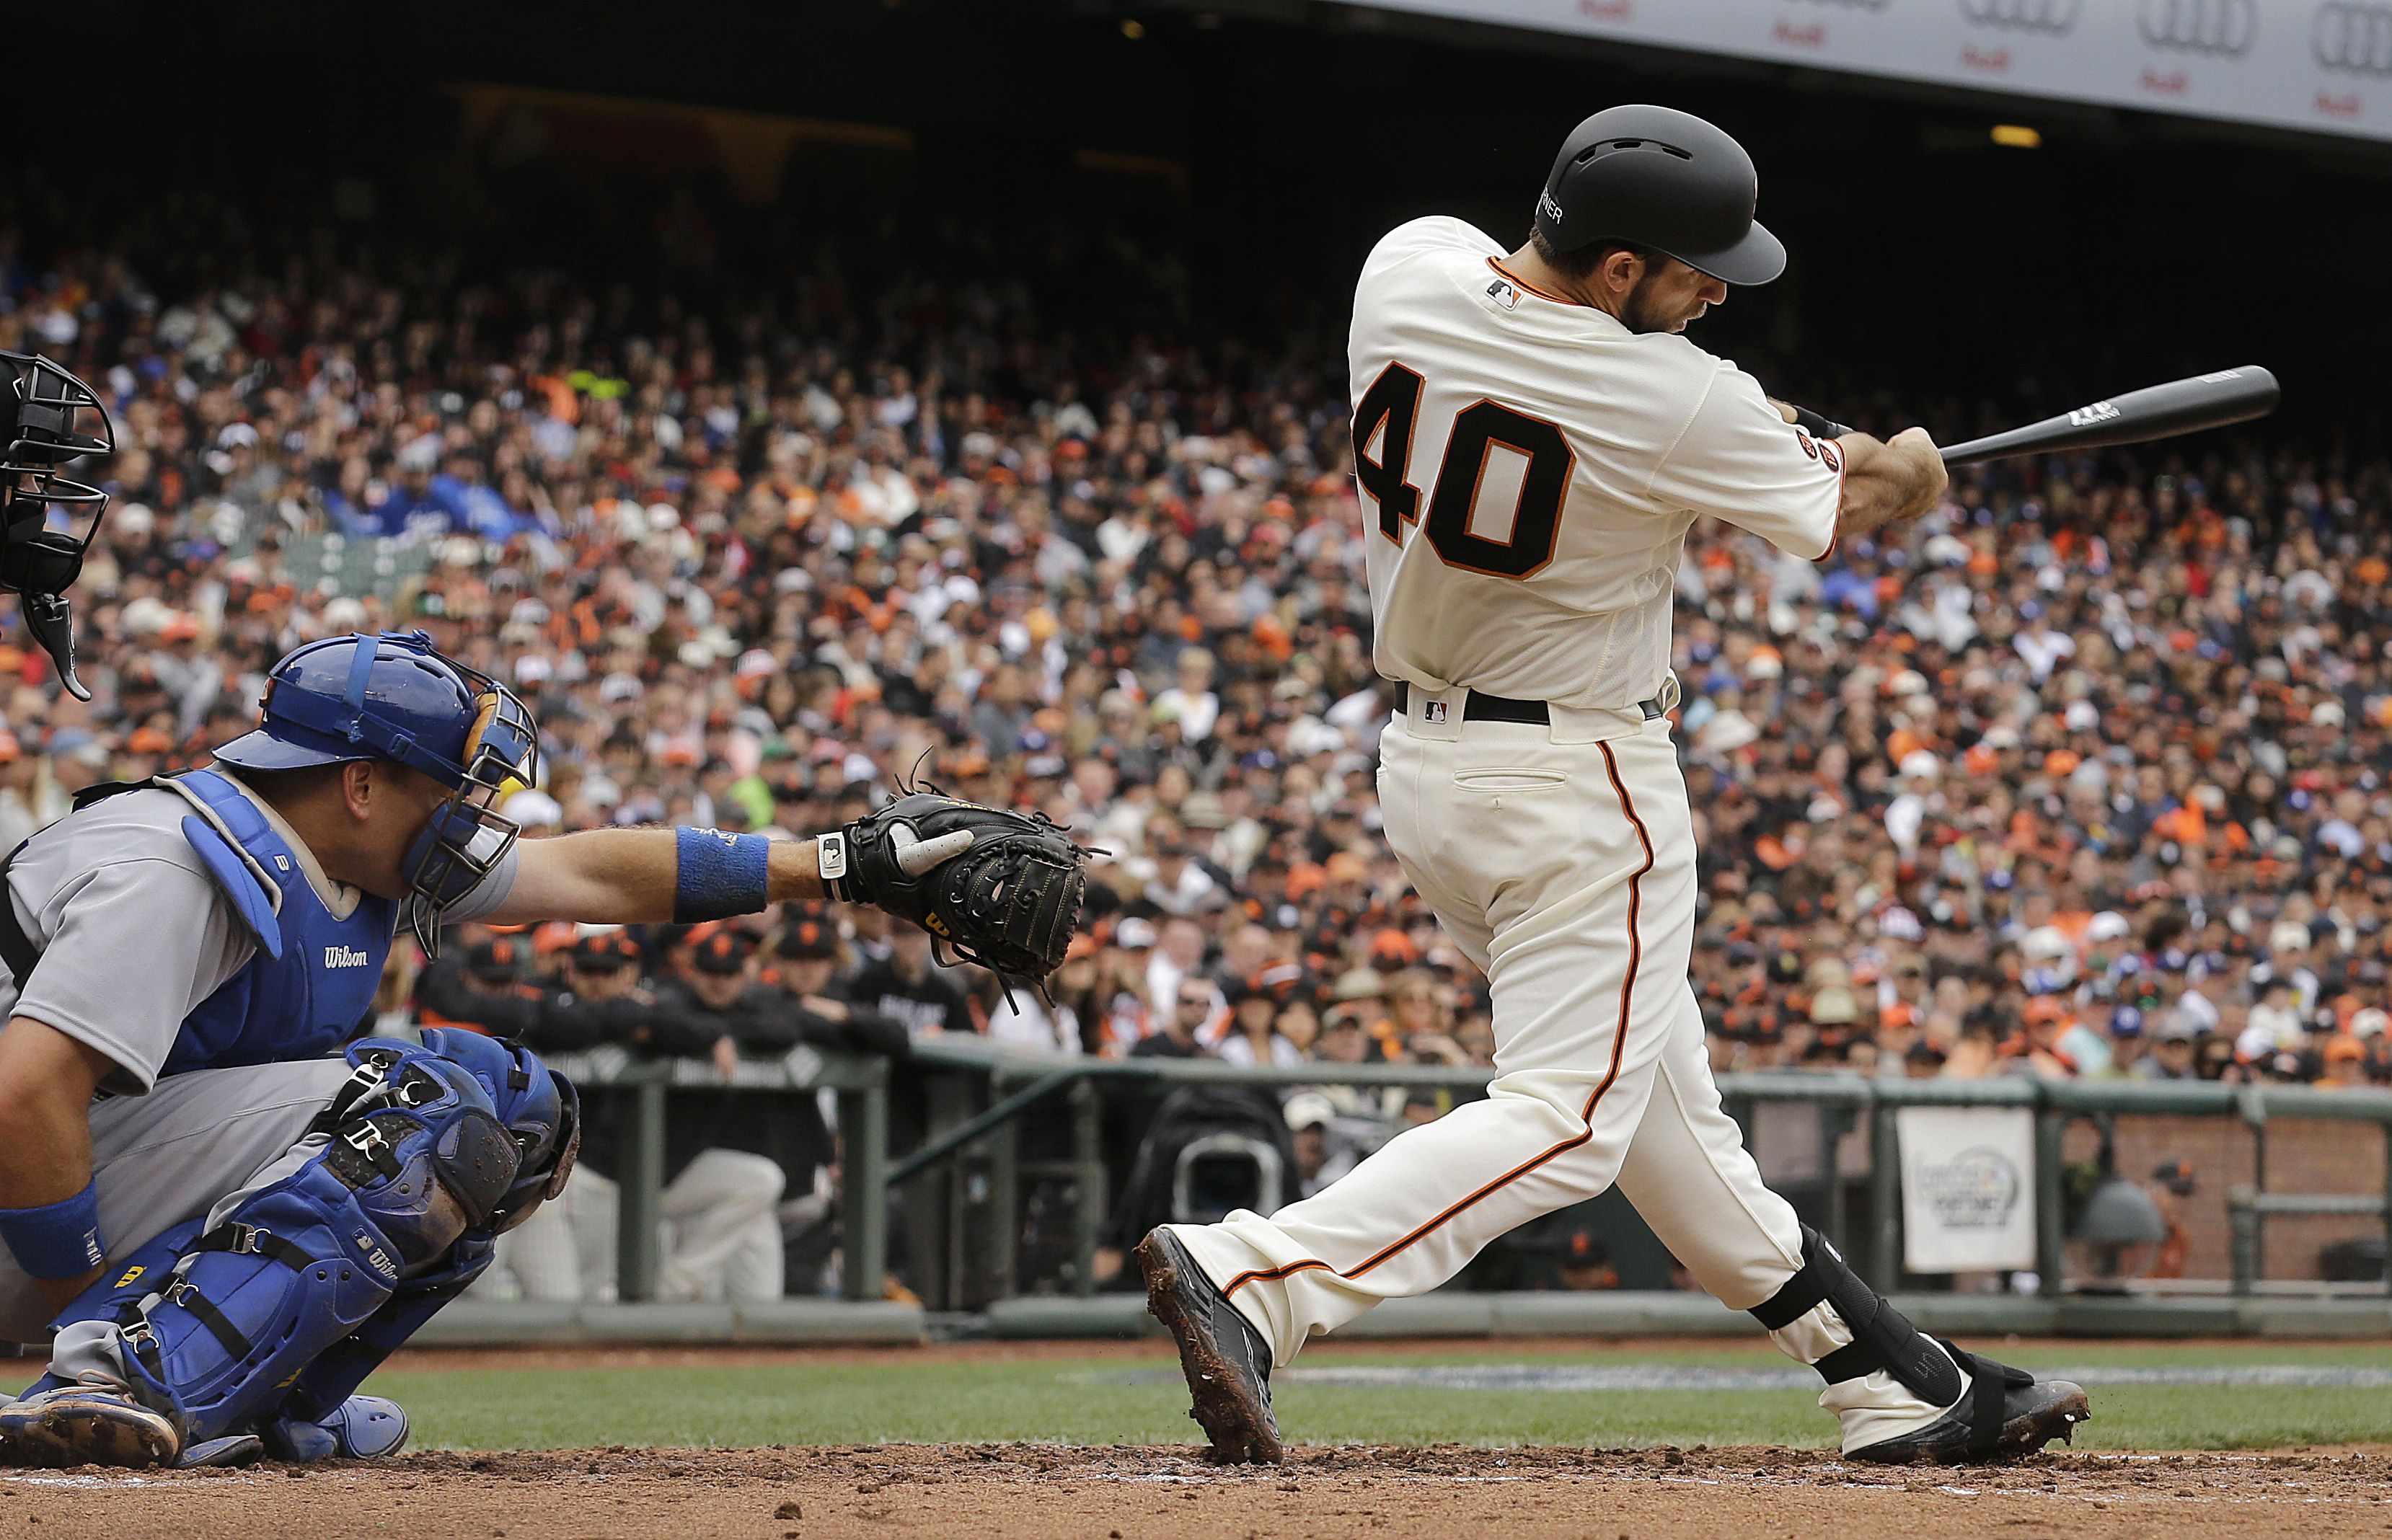 FILE - In this April 9, 2016, file photo, San Francisco Giants' Madison Bumgarner (40) hits a solo home run in front of Los Angeles Dodgers catcher A.J. Ellis during the second inning of a baseball game in San Francisco. San Francisco manager Bruce Bochy